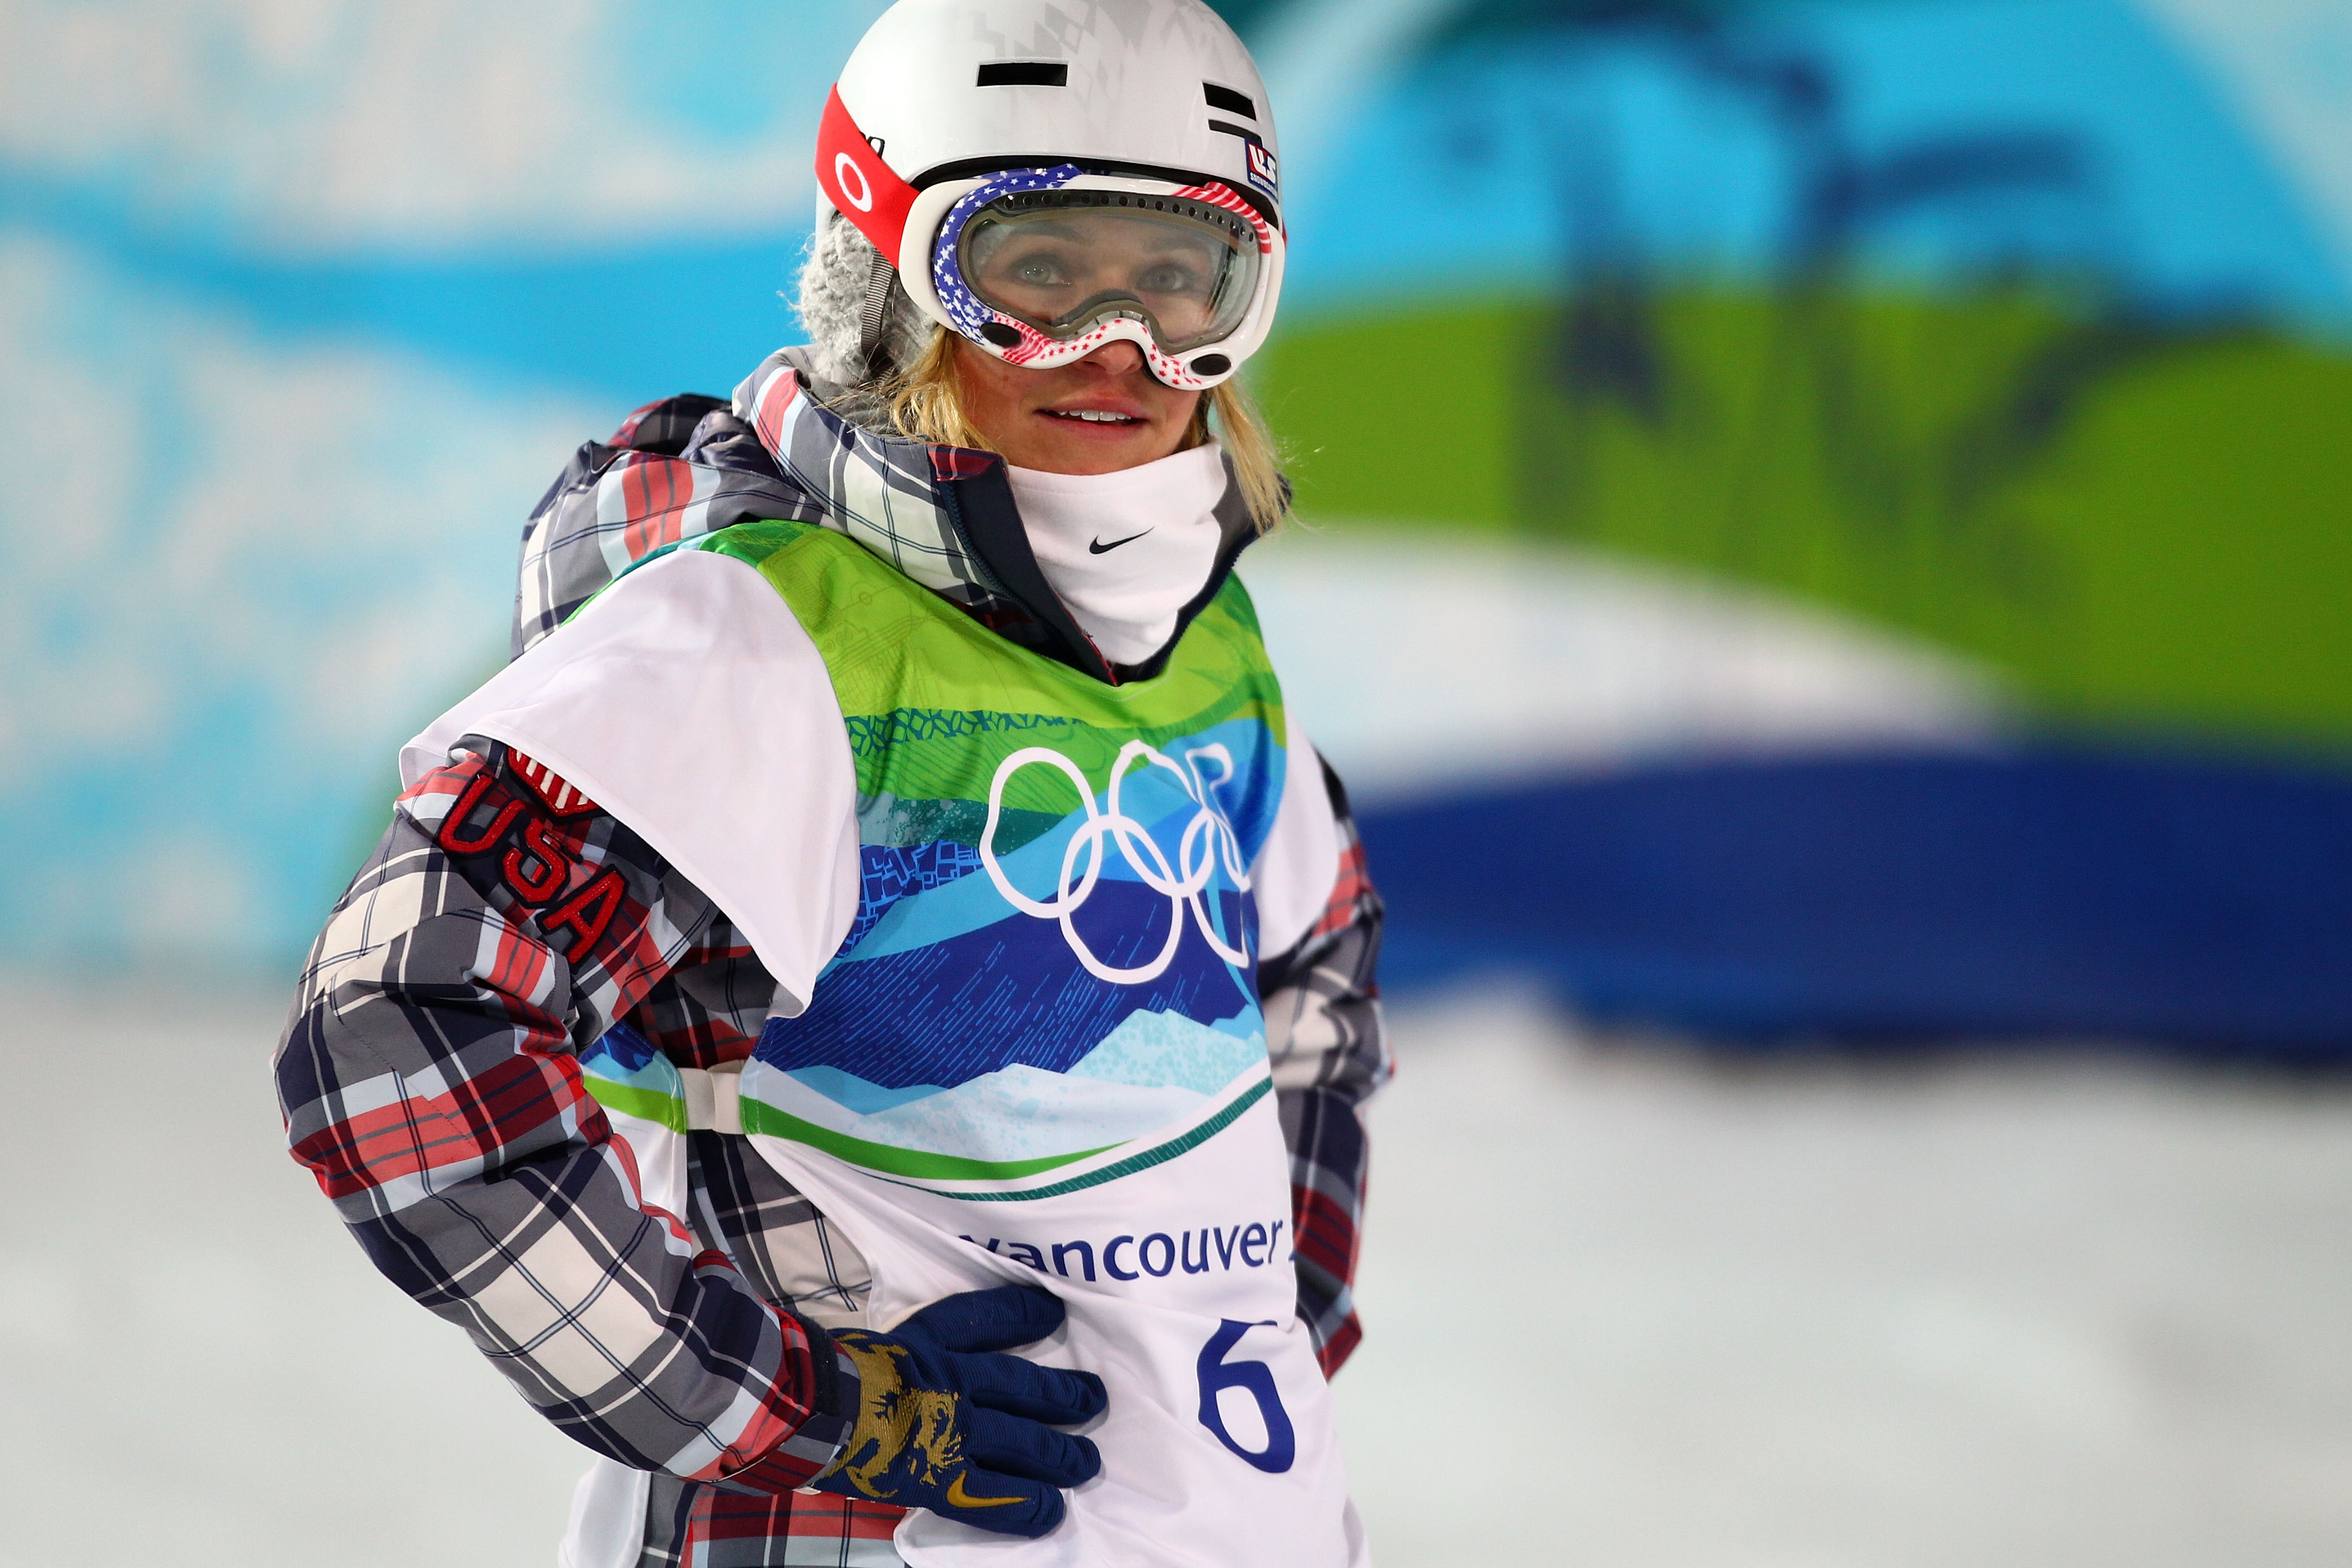 Gretchen Bleiler will look for redemption at the Winter X Games after her disappointing performance in Vancouver.